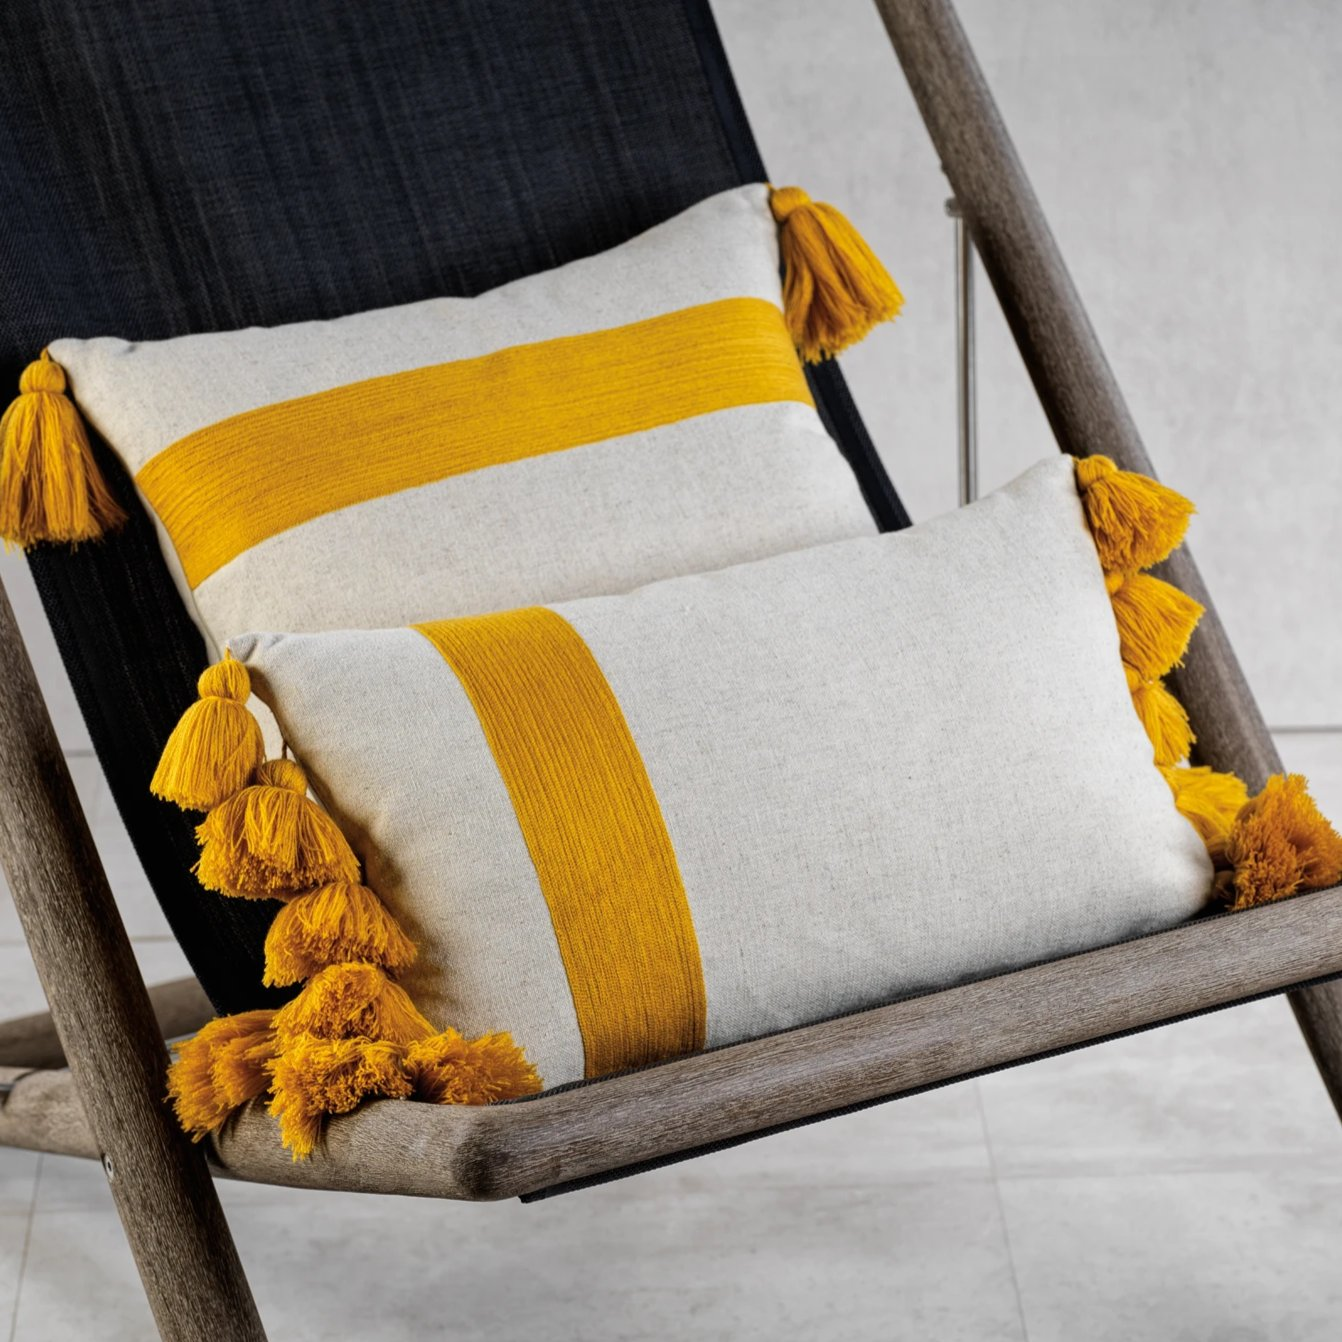 Polignano Embroidered Throw Pillow w/Tassels - Yellow